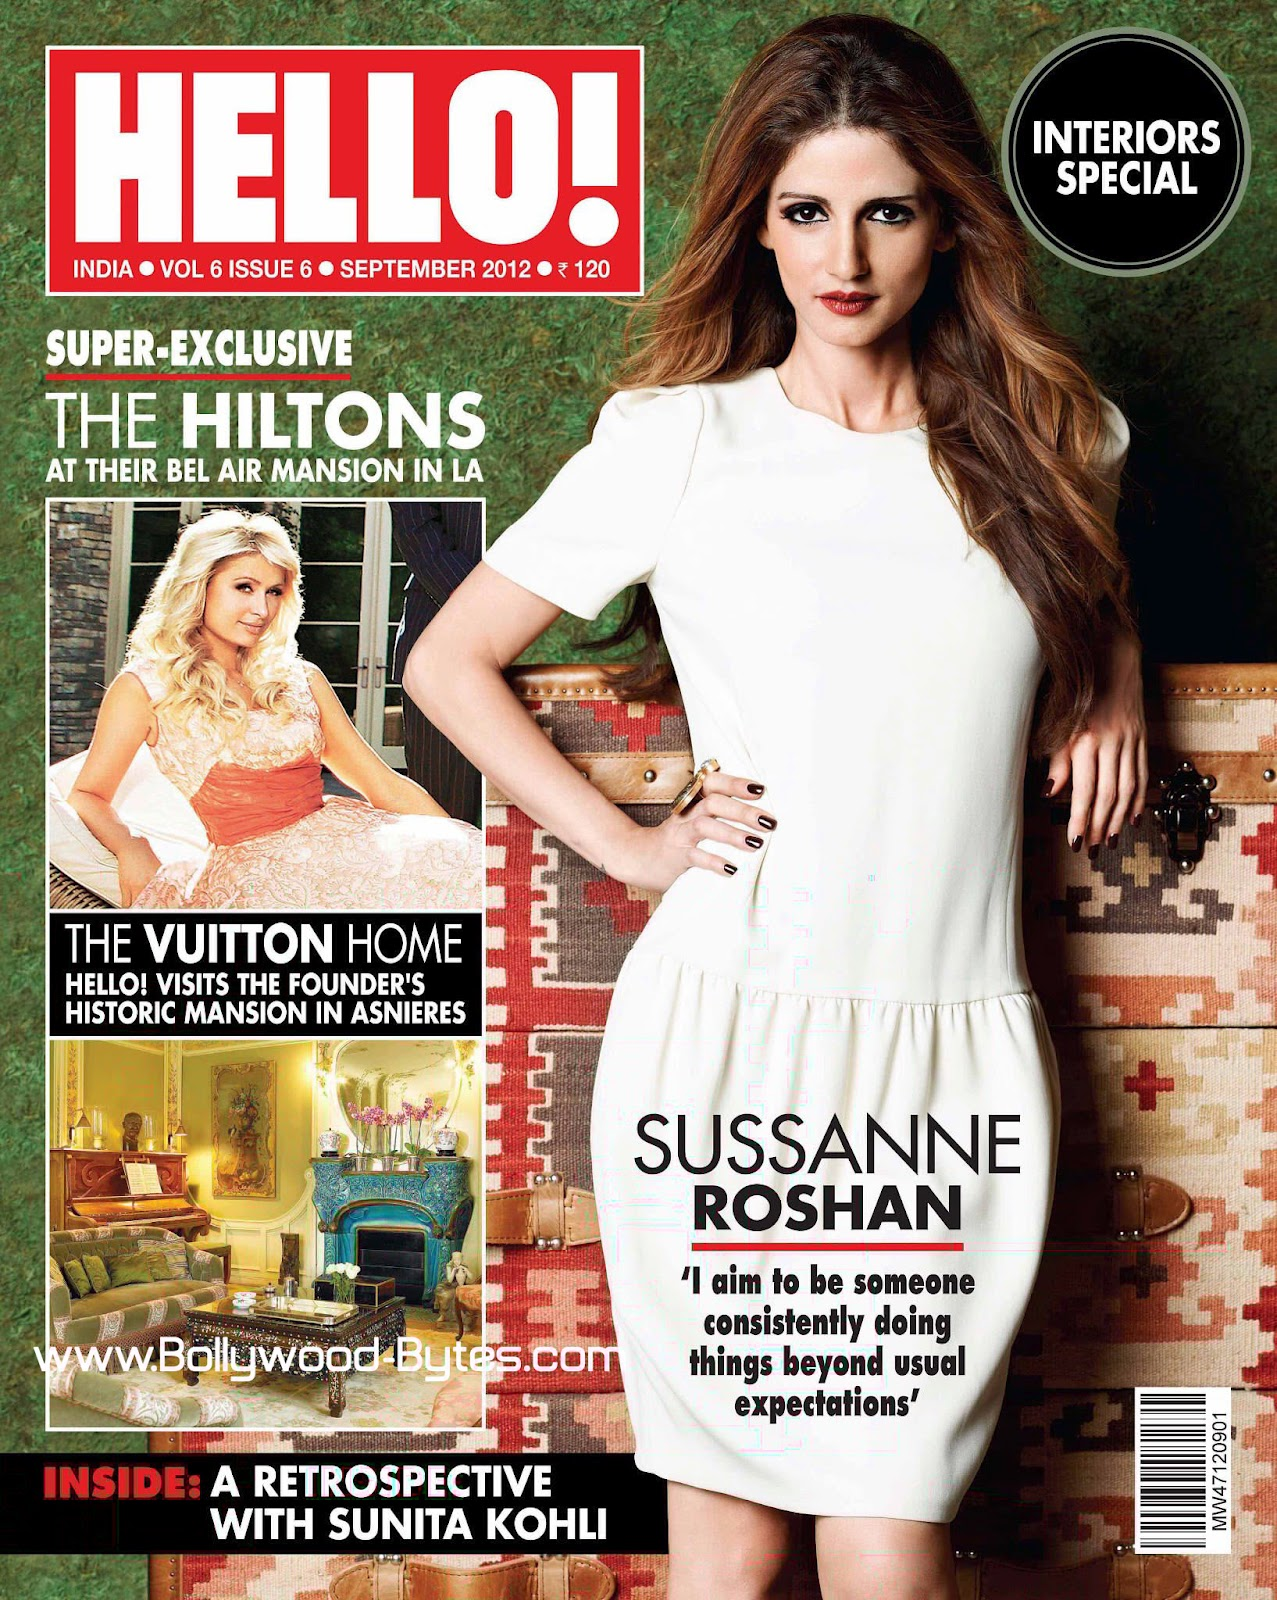 http://4.bp.blogspot.com/-iZgicBJYa0Q/UEJKiM0QvpI/AAAAAAAAOL8/mj2X1MQKb-Q/s1600/Beautiful-Sussanne-Roshan-On-the-cover-Hello!-India-Magazine-September-2012.jpg